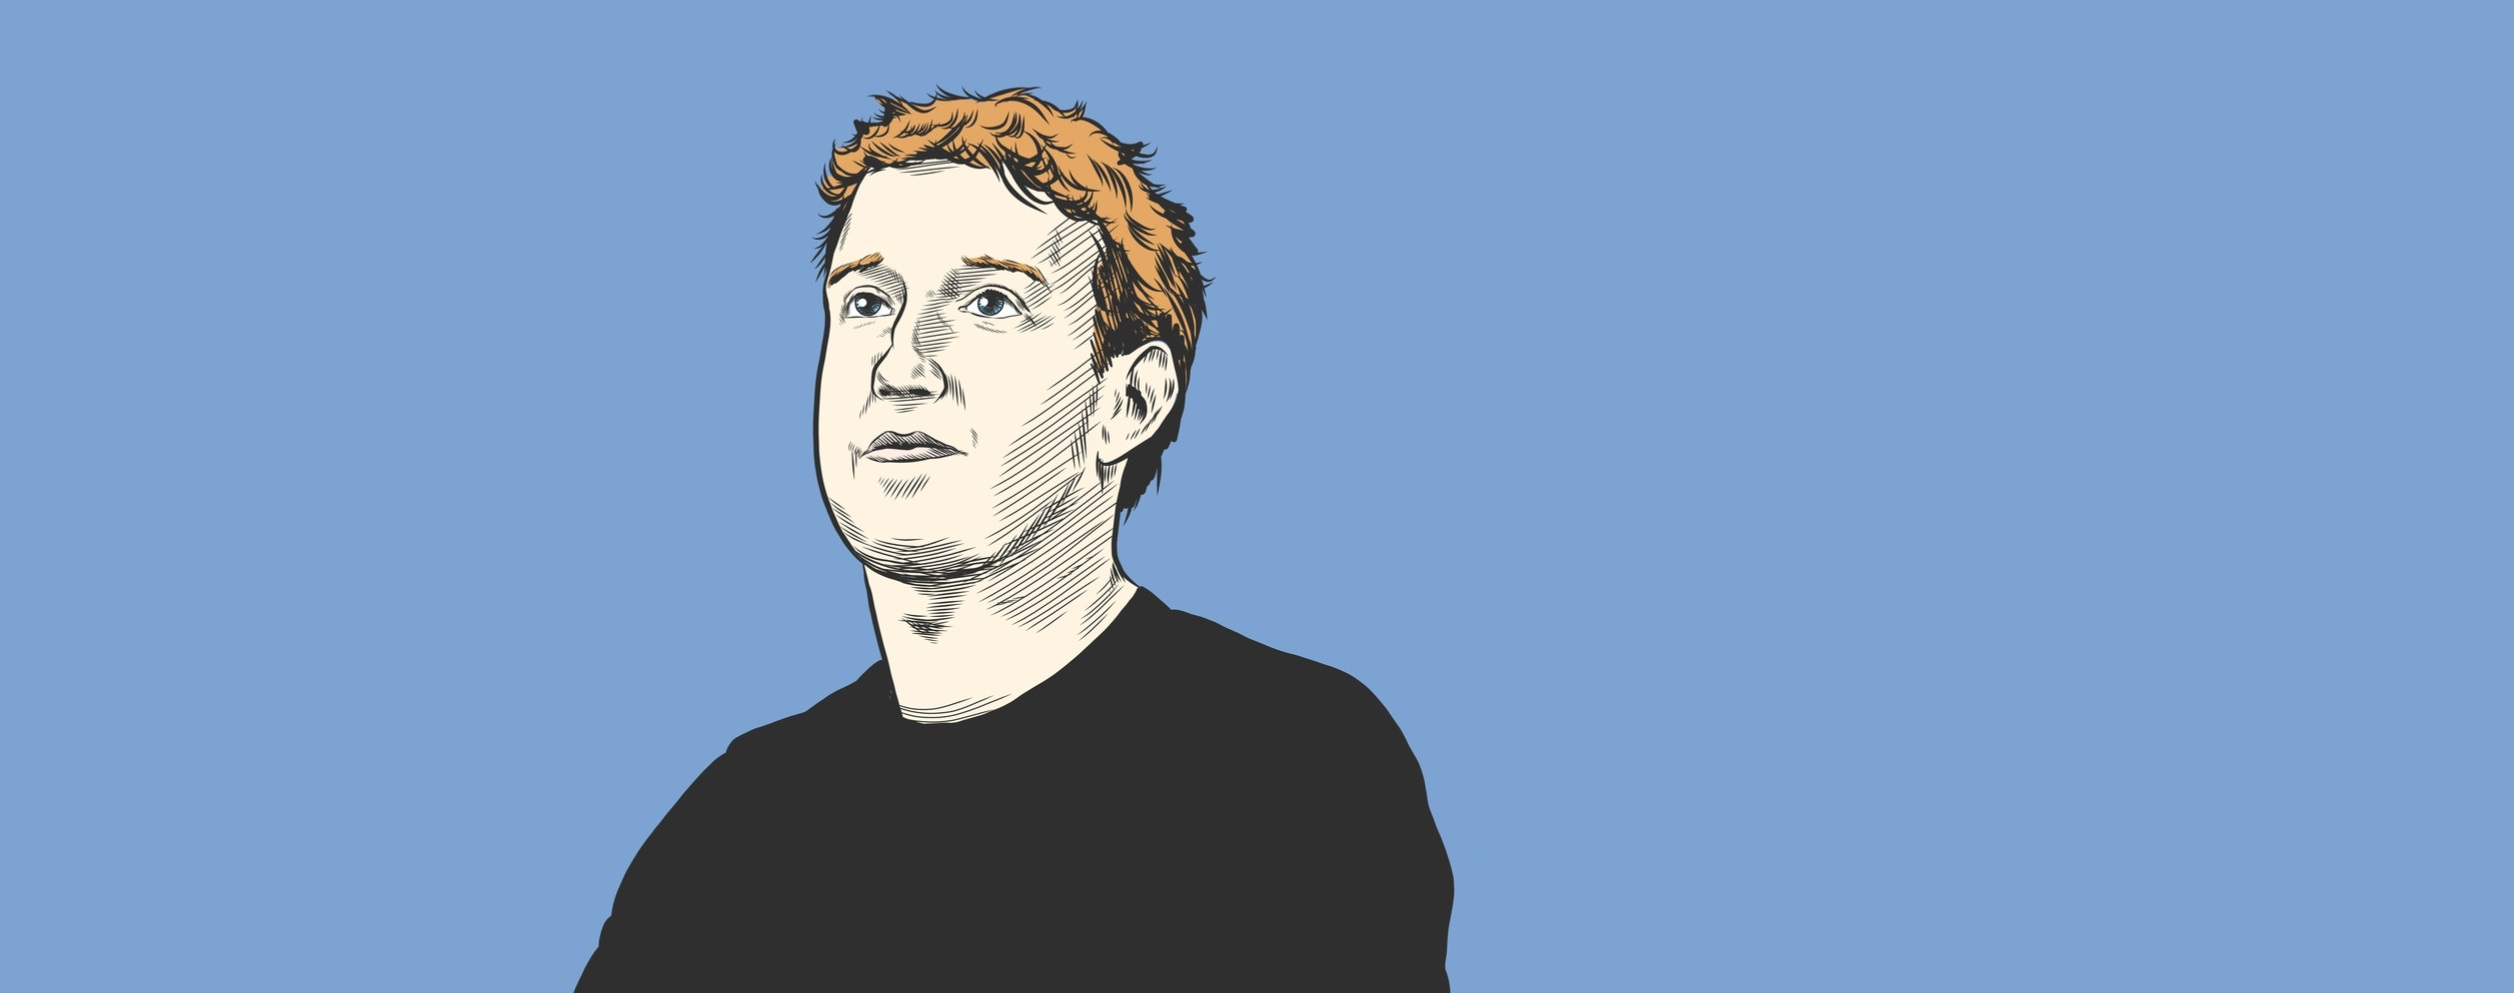 HE VOWED TO MAKE FACEBOOK BETTER. HAS THE NEED FOR PROFIT MADE IT MUCH, MUCH WORSE?